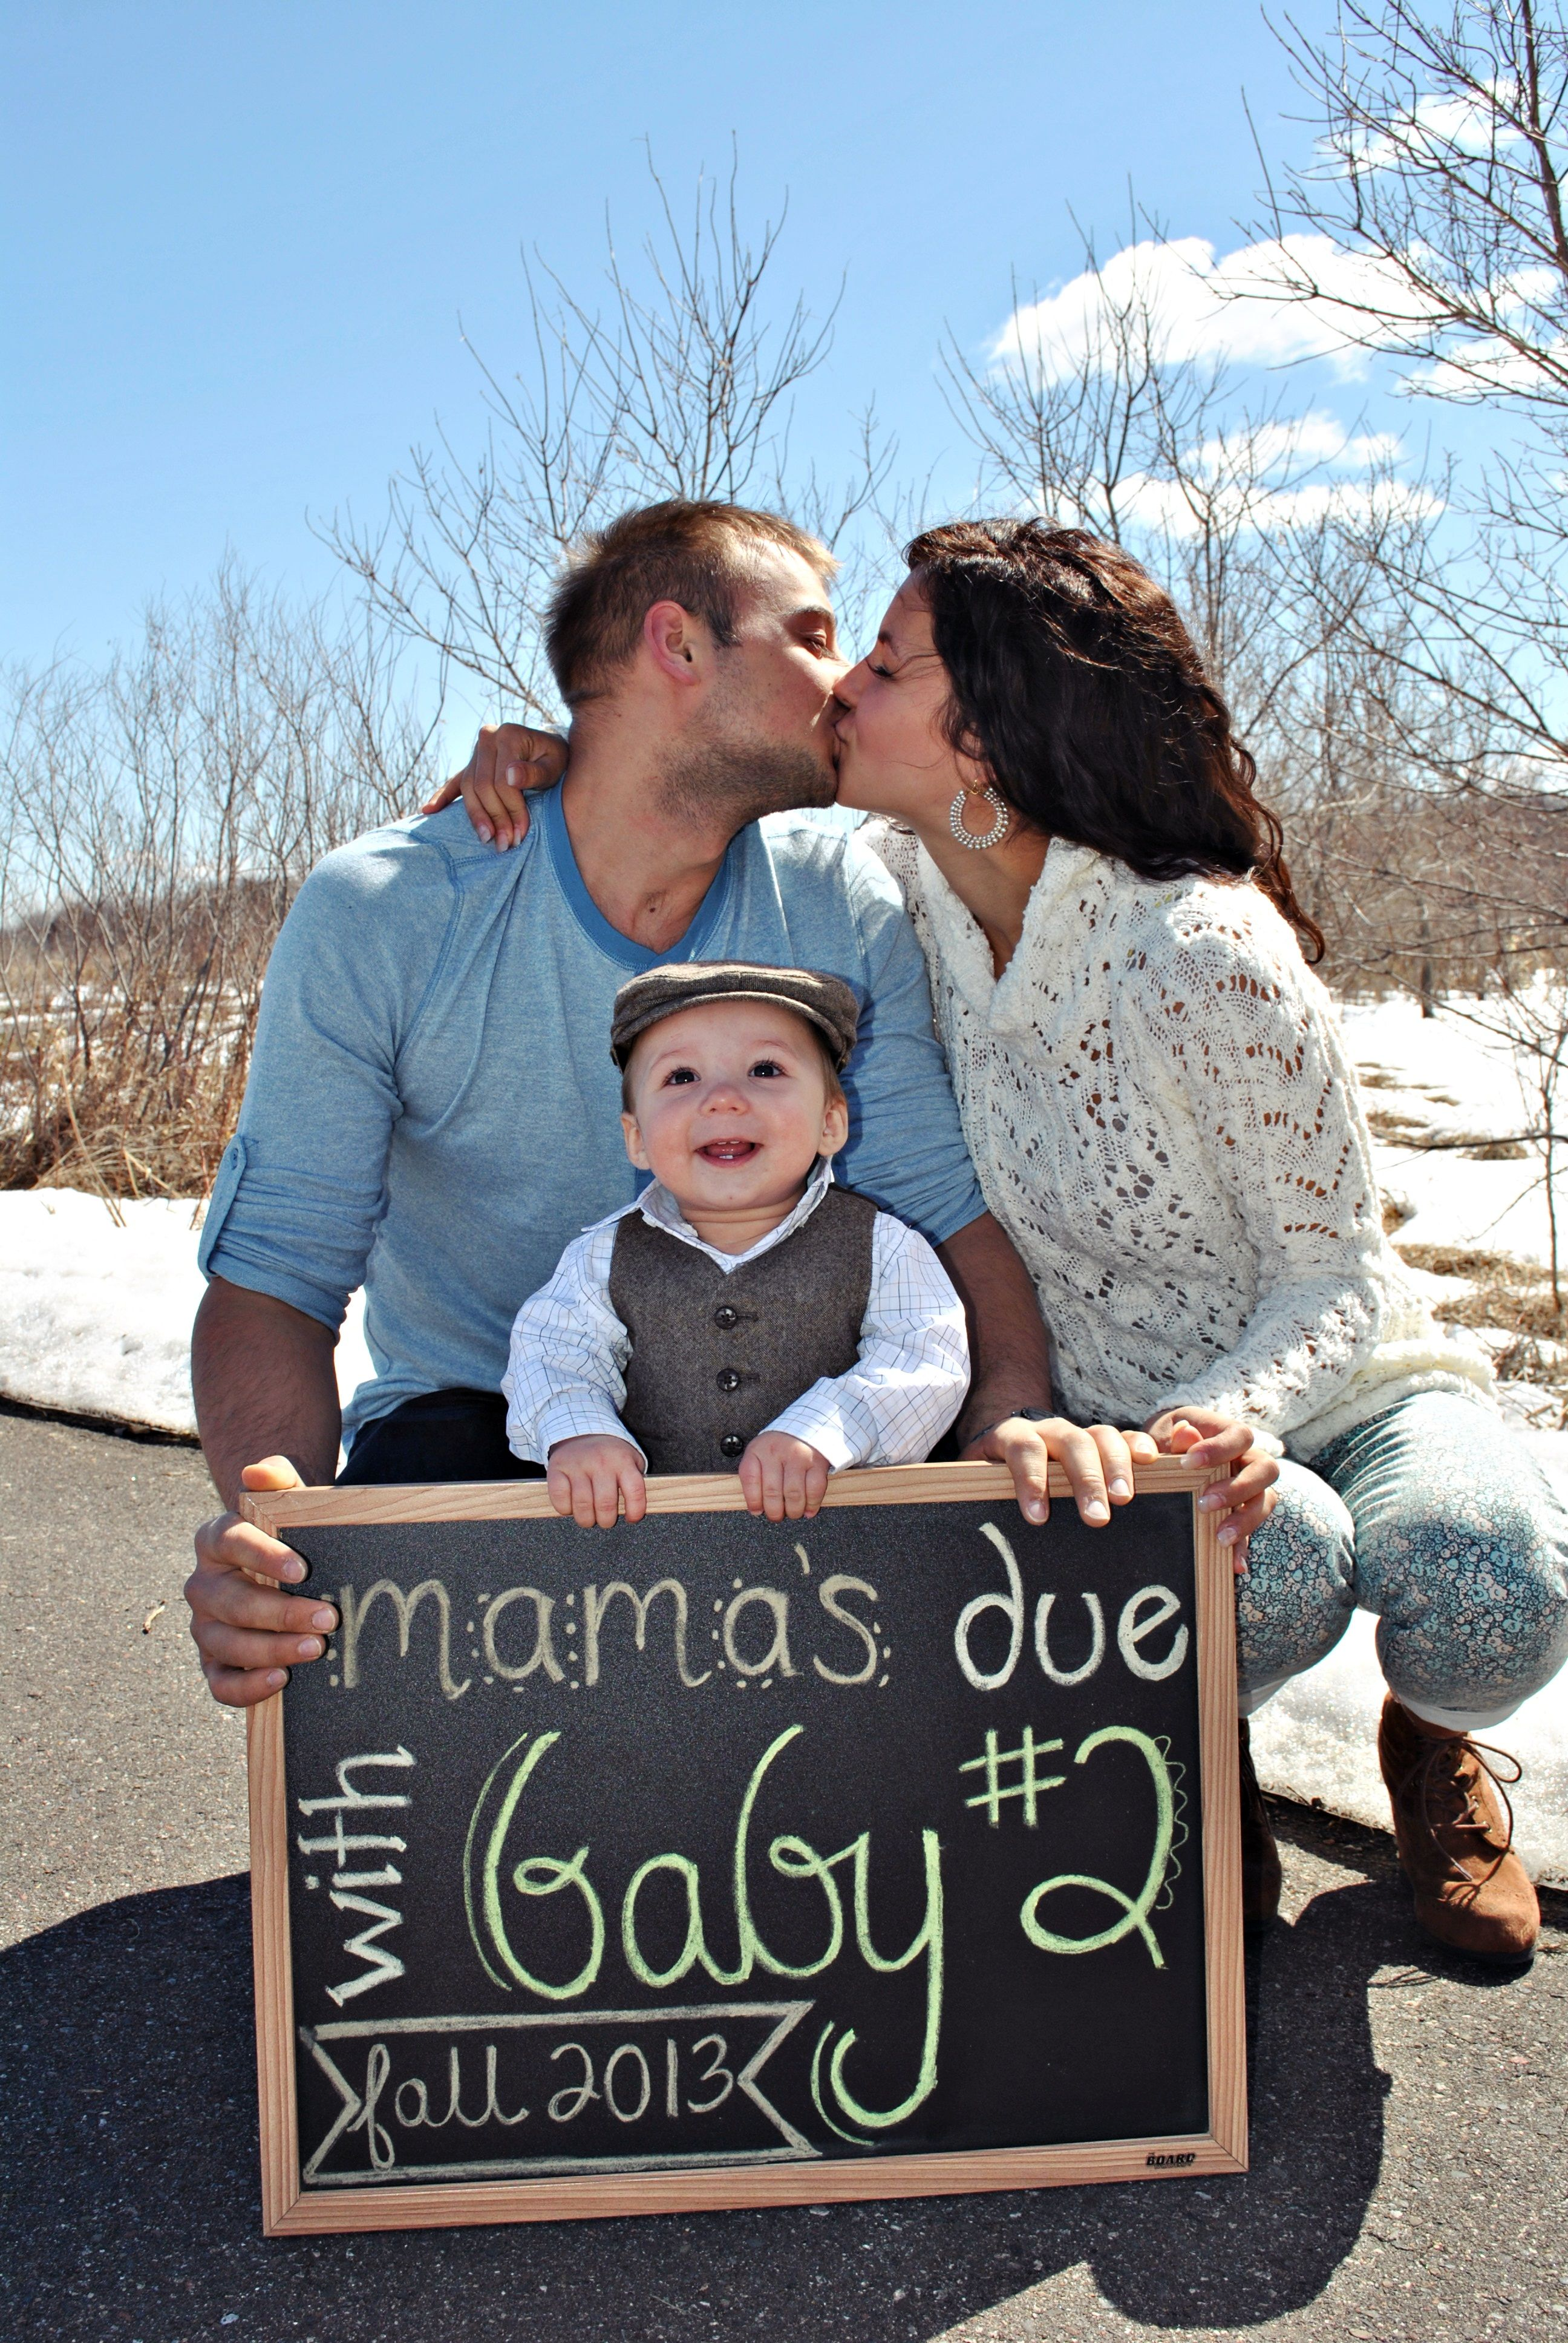 Second baby announcement idea... No not yet, just think ...  Baby